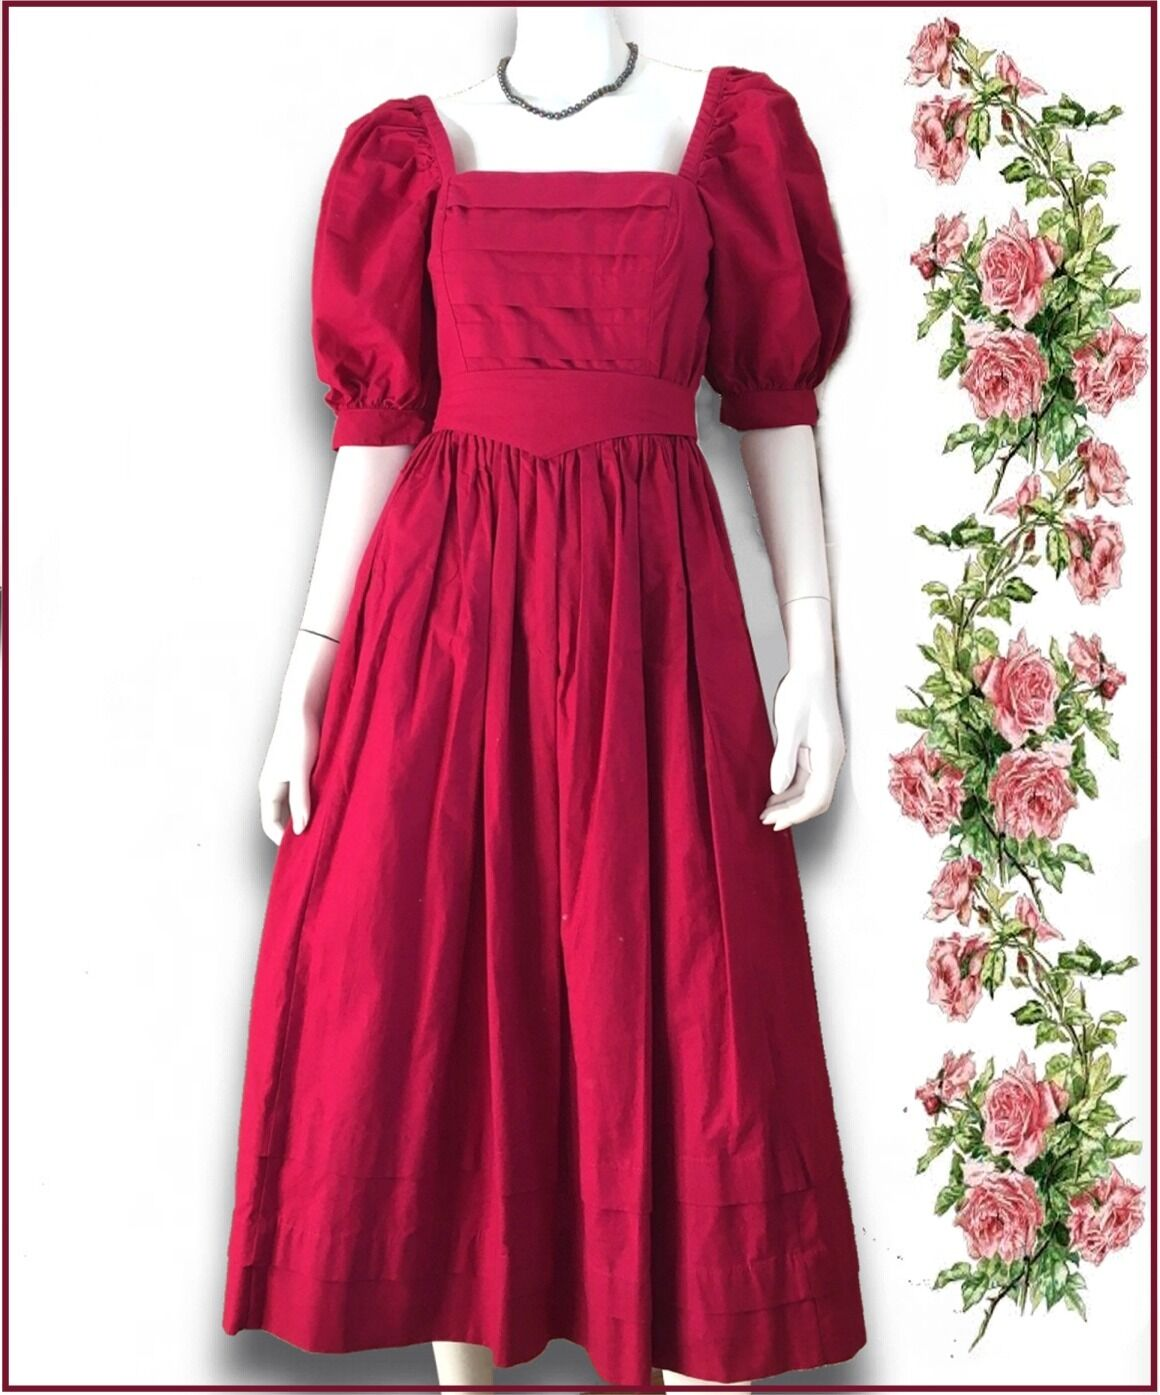 VTG Laura Ashley red 100% cotton puff sleeves belt dress US 10 Eur 38 GB